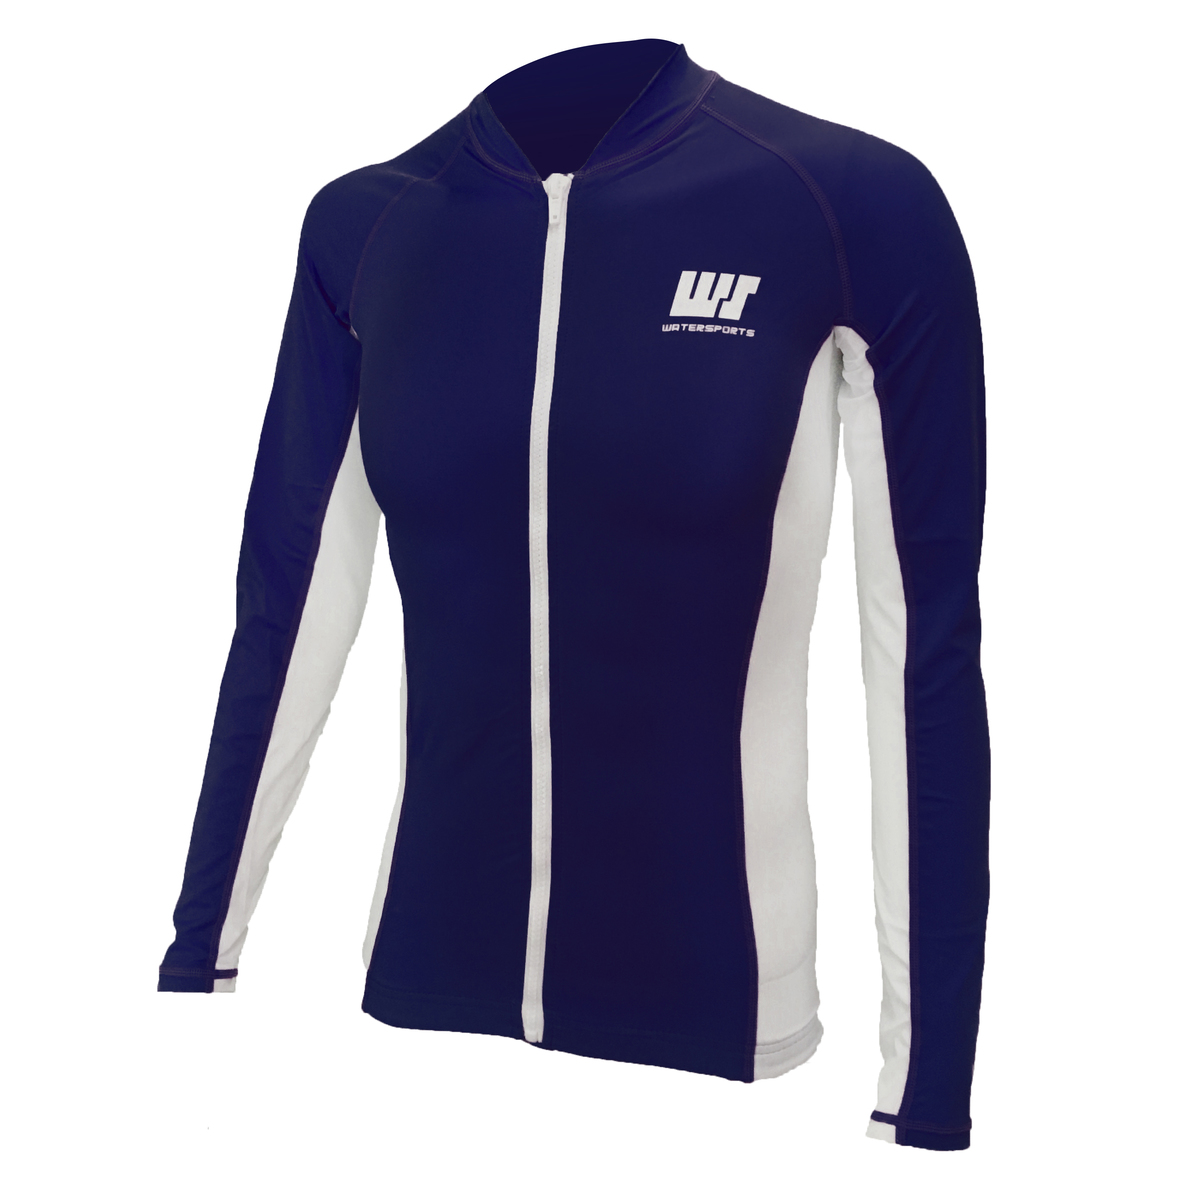 Adult's Sun Protection Jacket - Navy